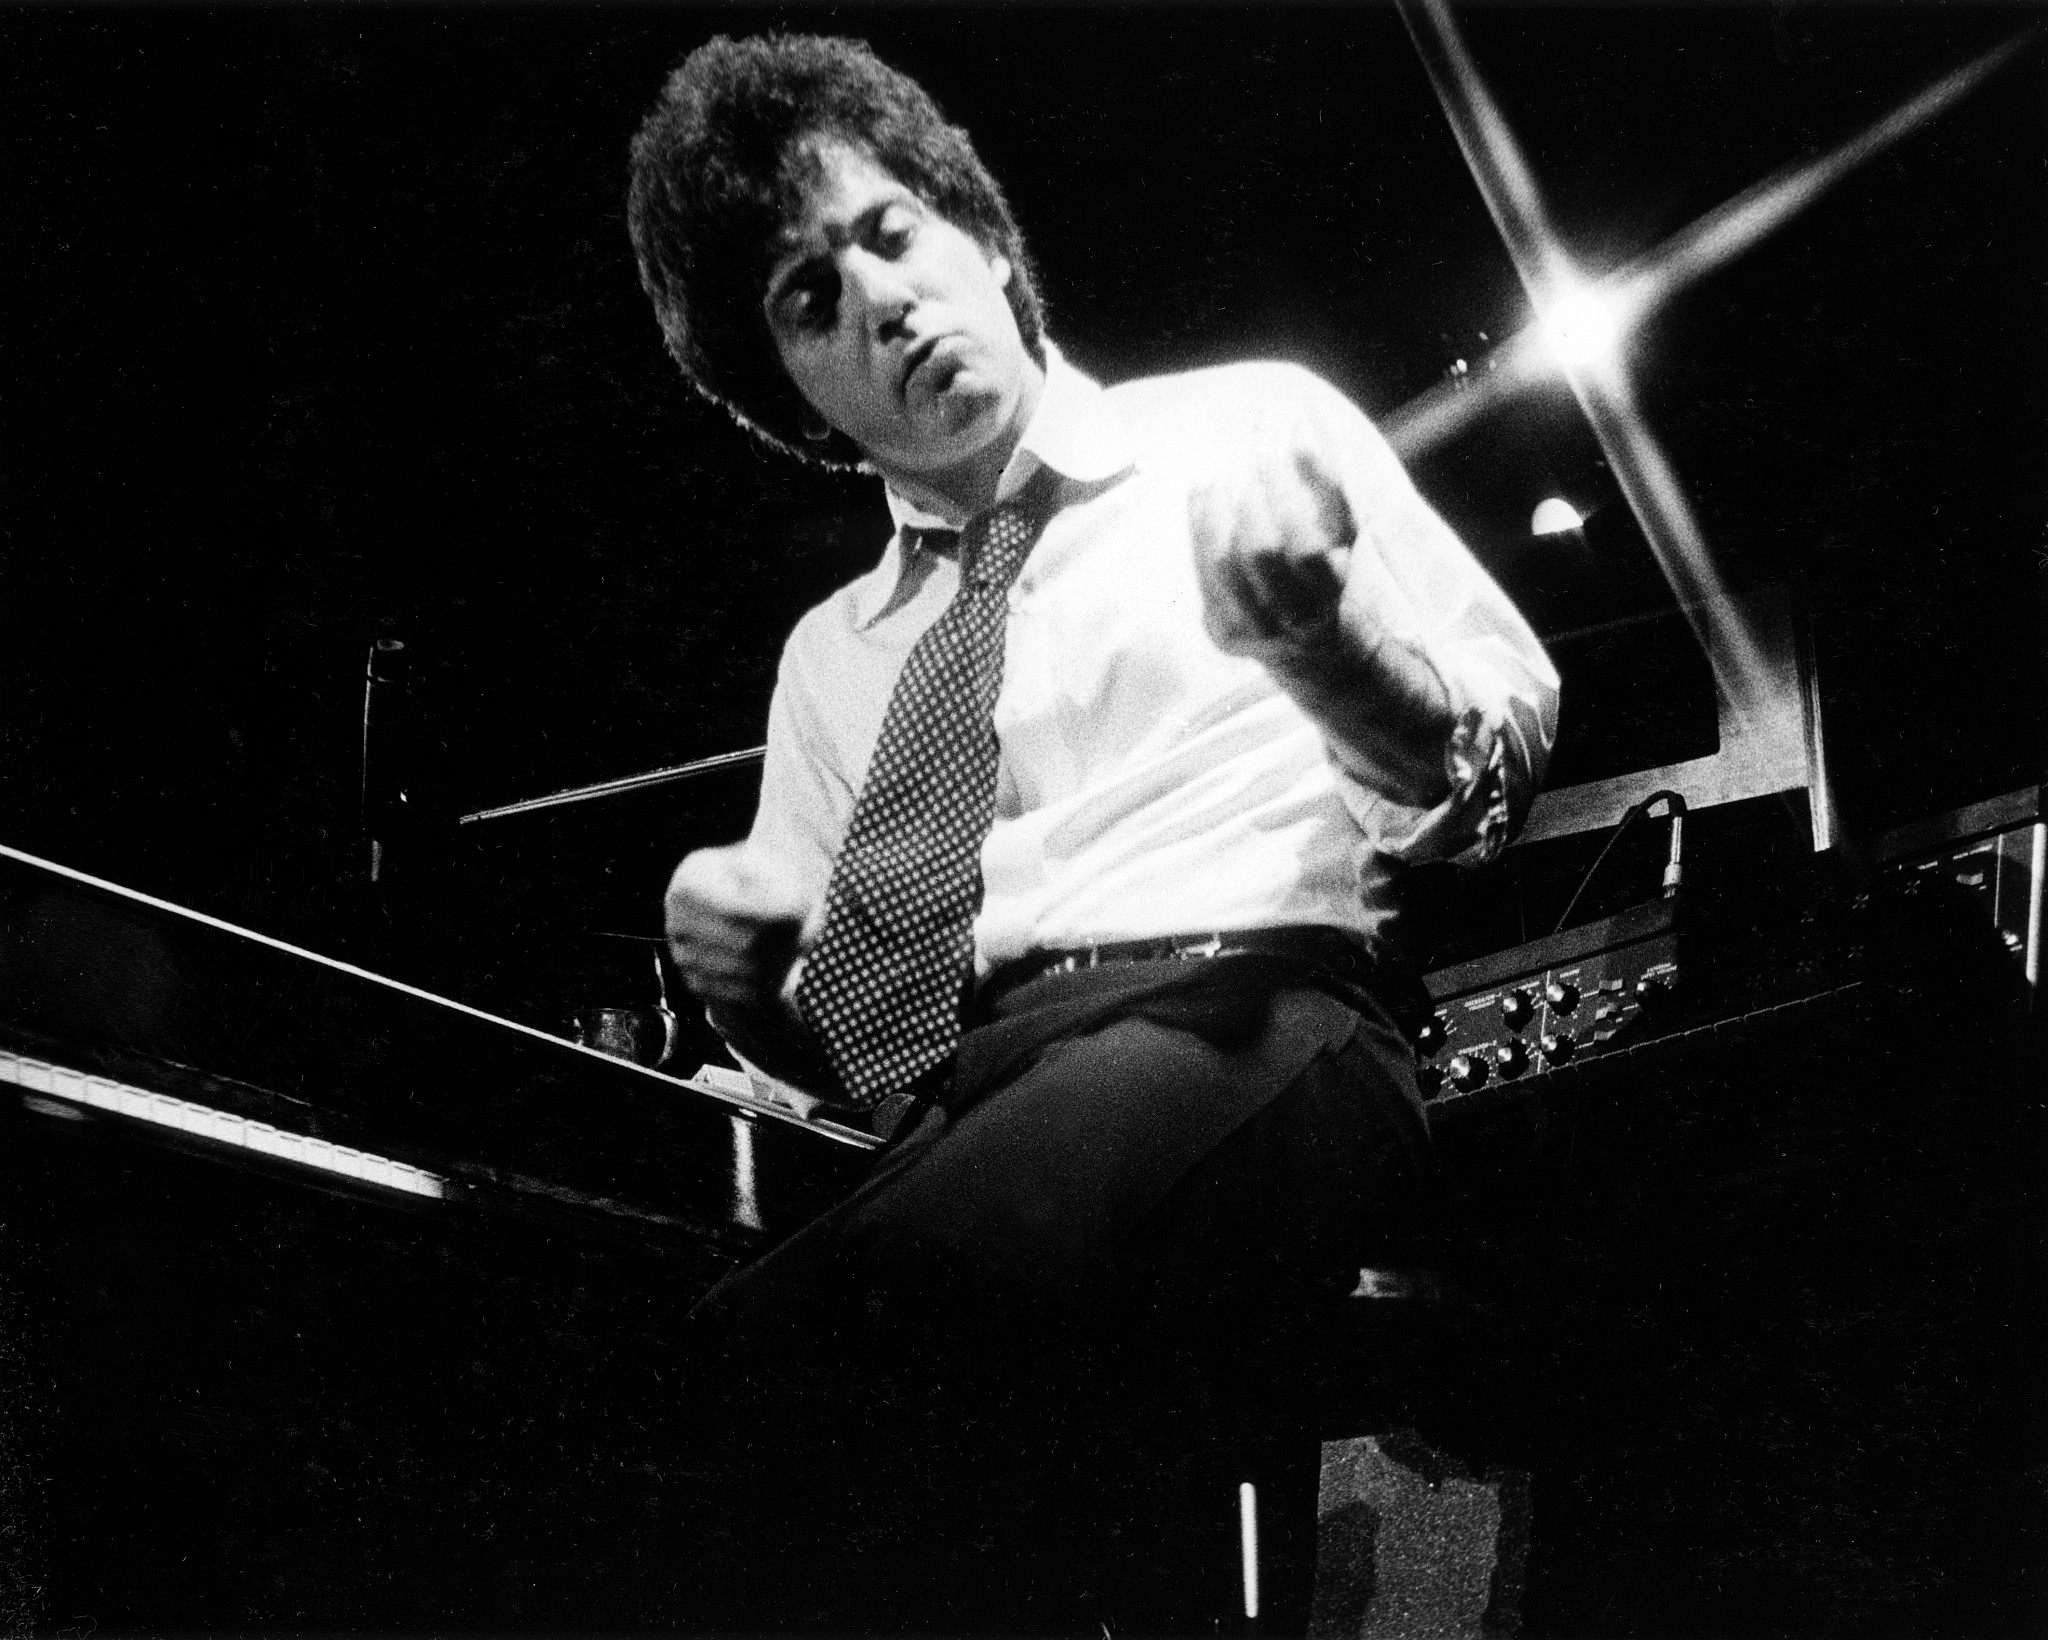 Billy Joel performing at My Father's Place in Long Island, New York. (Steve Rosenfeld)